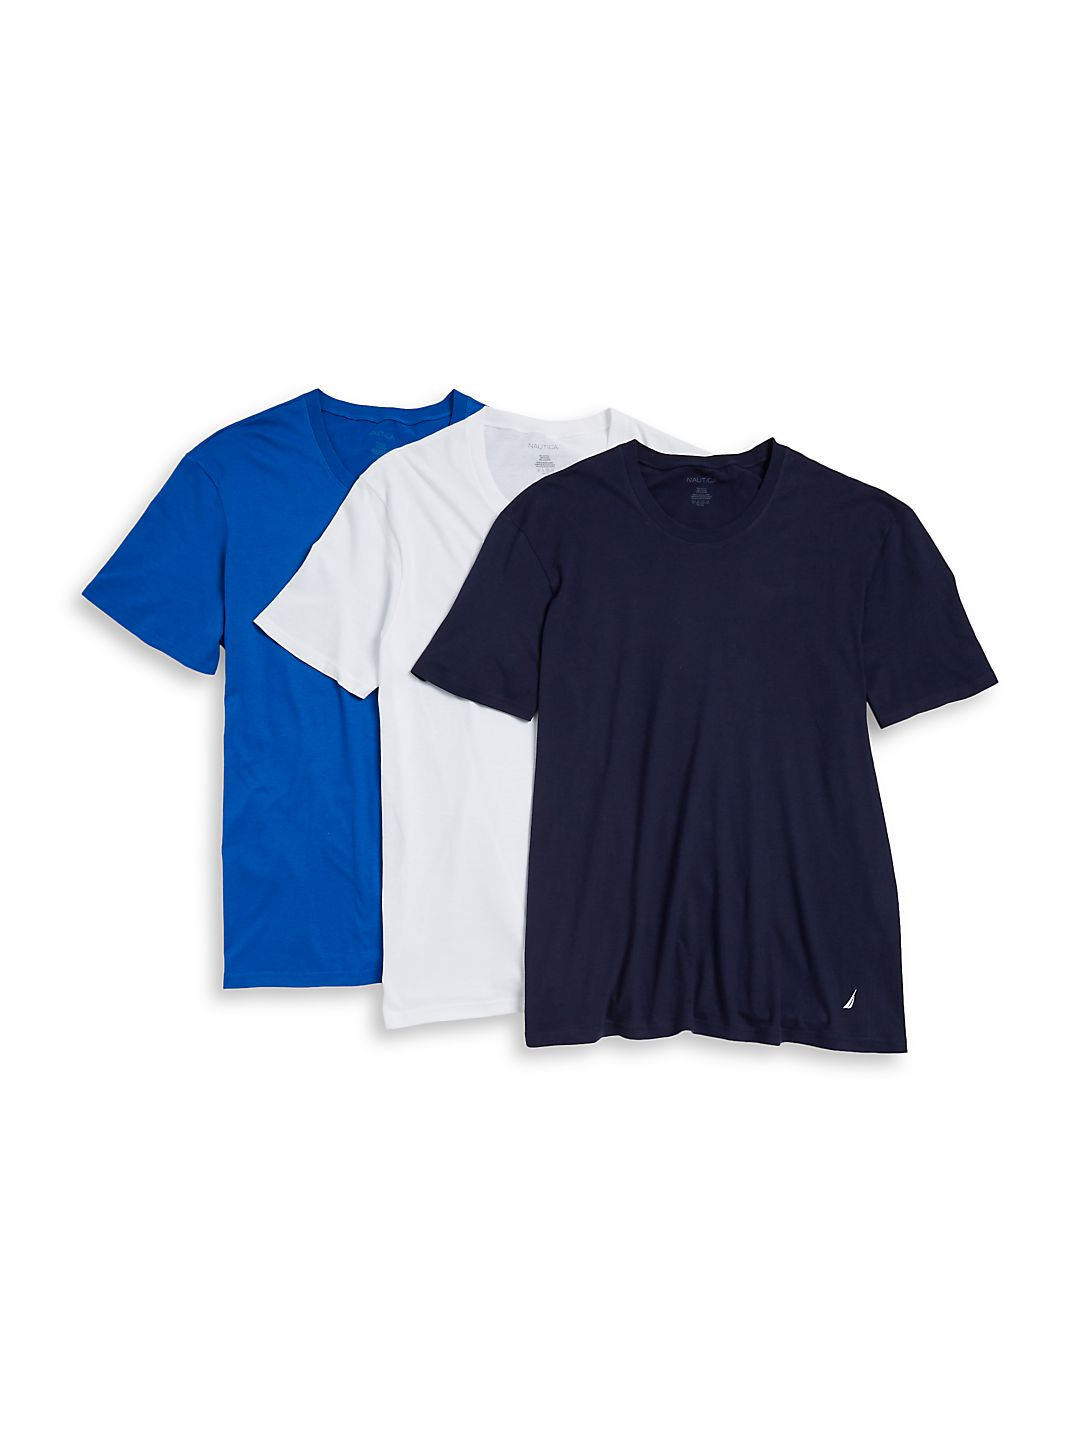 3-Pack Assorted Crewneck Cotton Tee Set